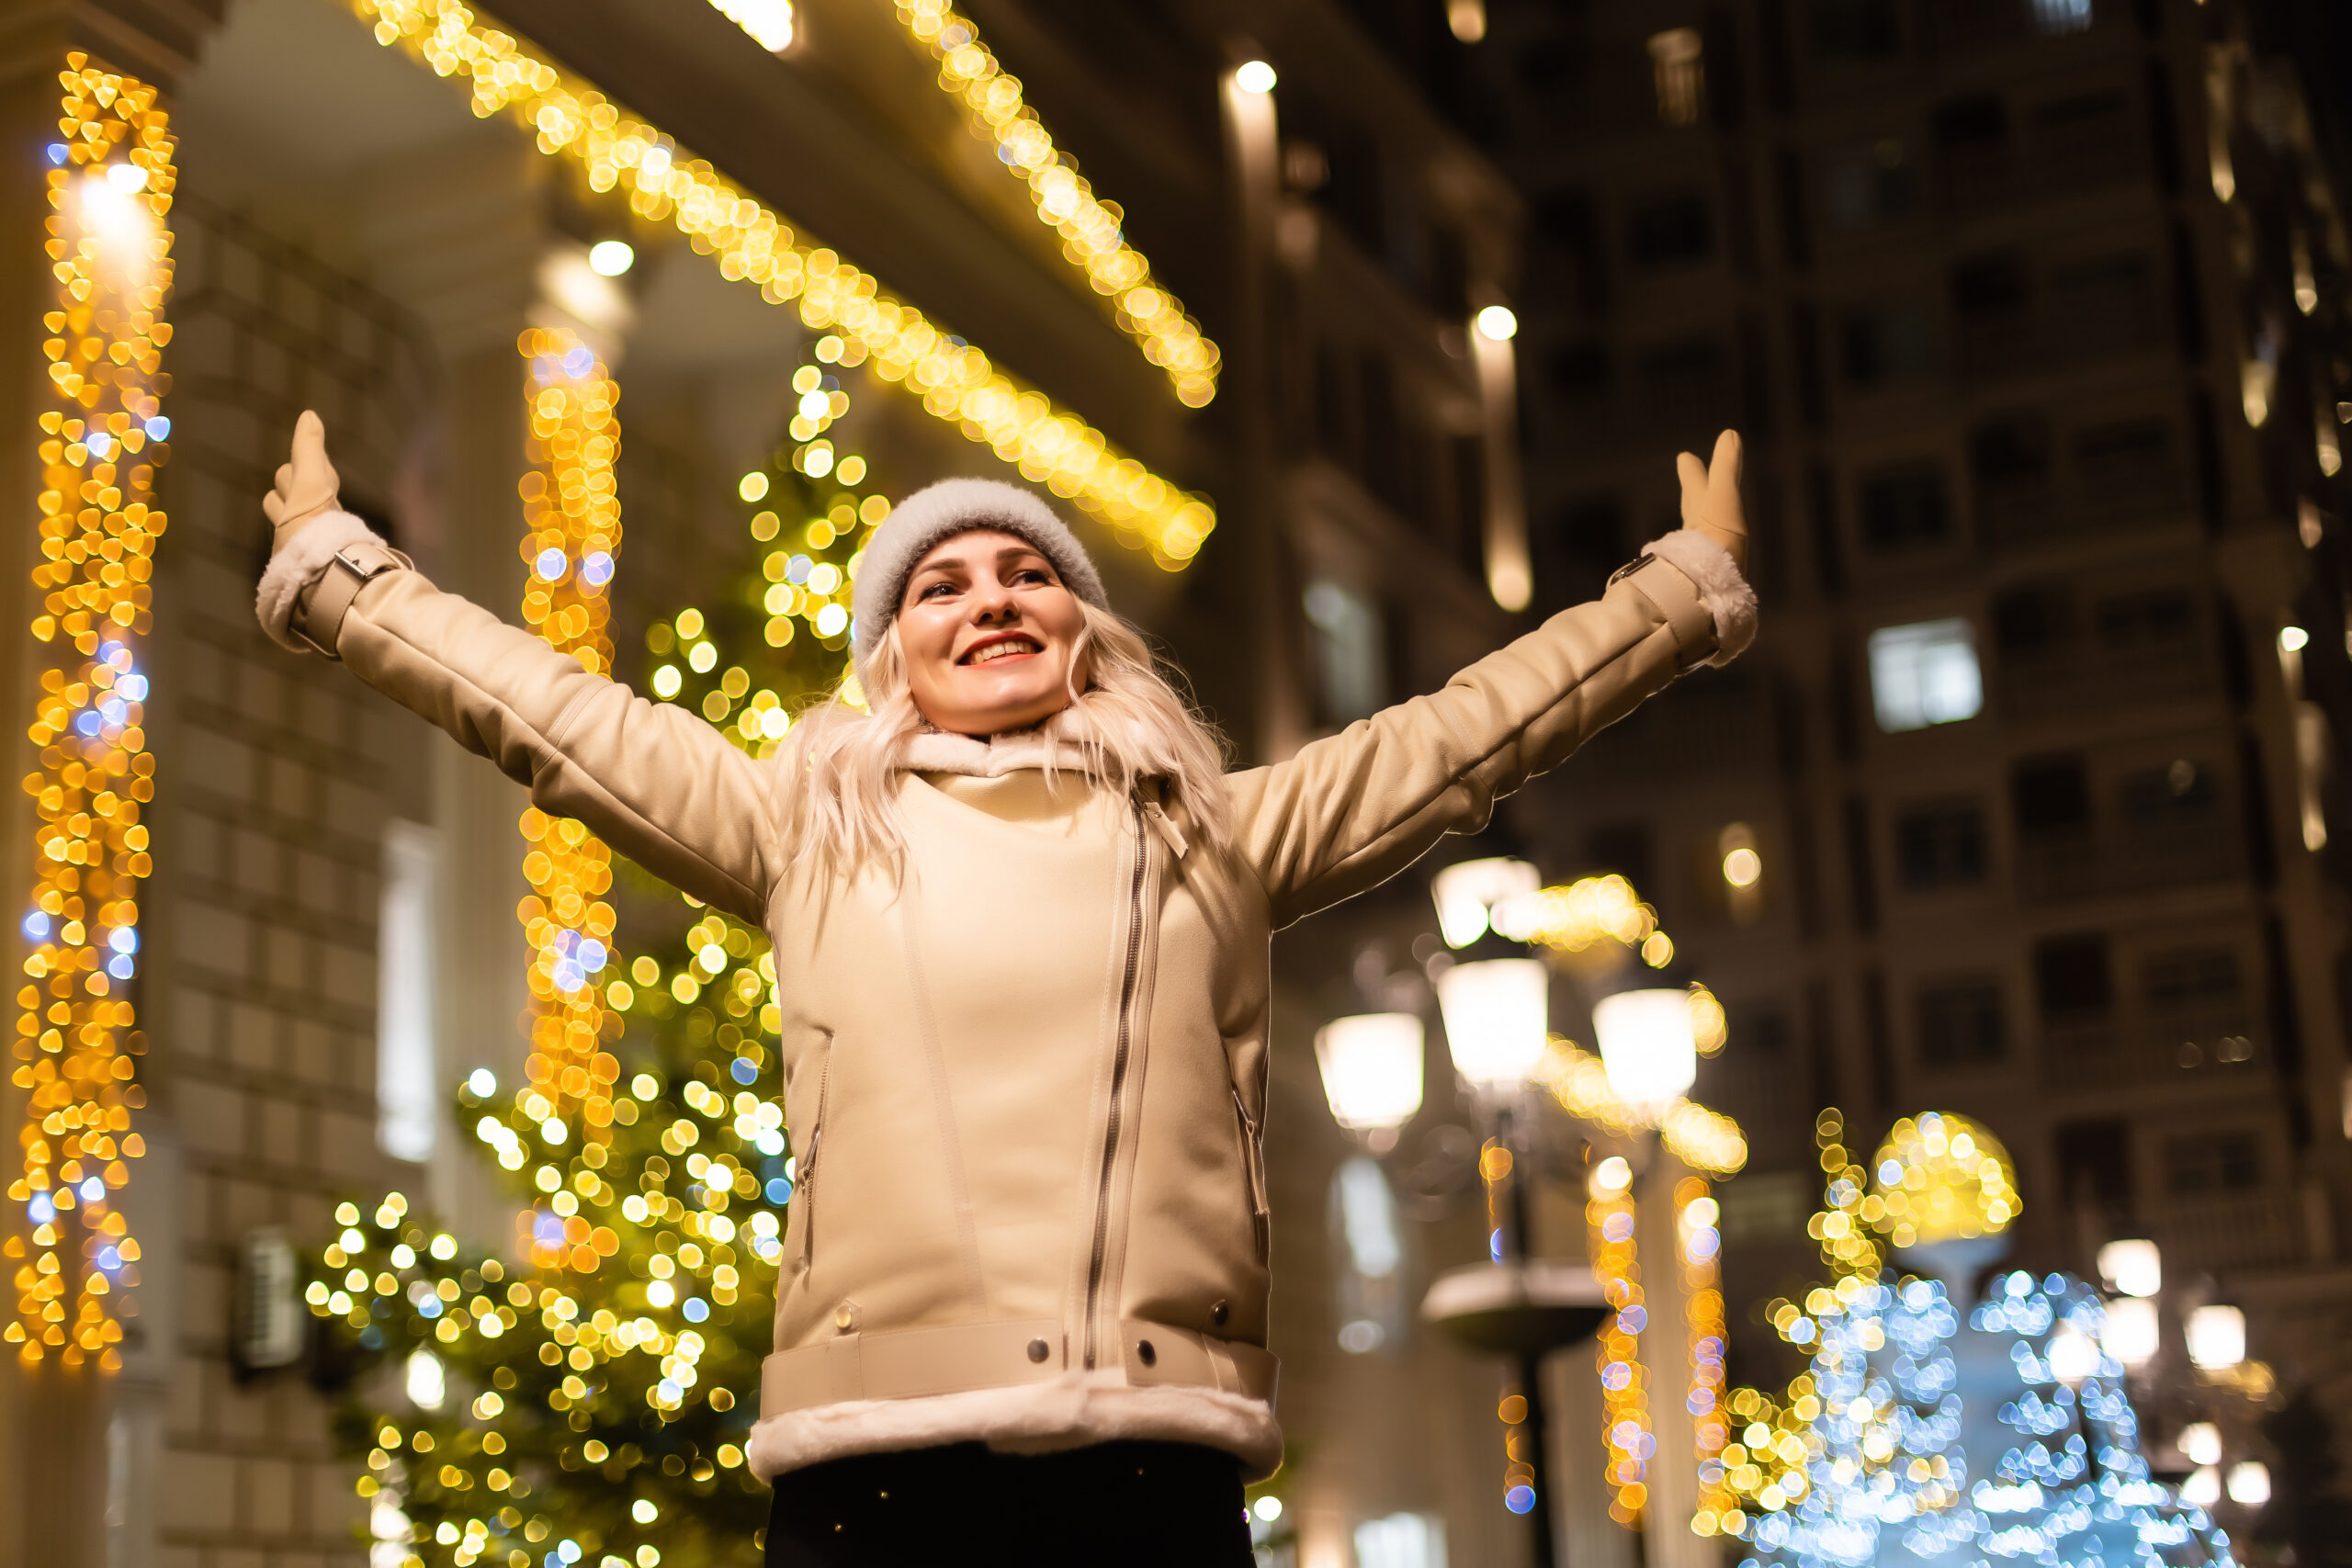 HOW TO SCORE BIG FOR YOUR BUSINESS THIS HOLIDAY SEASON